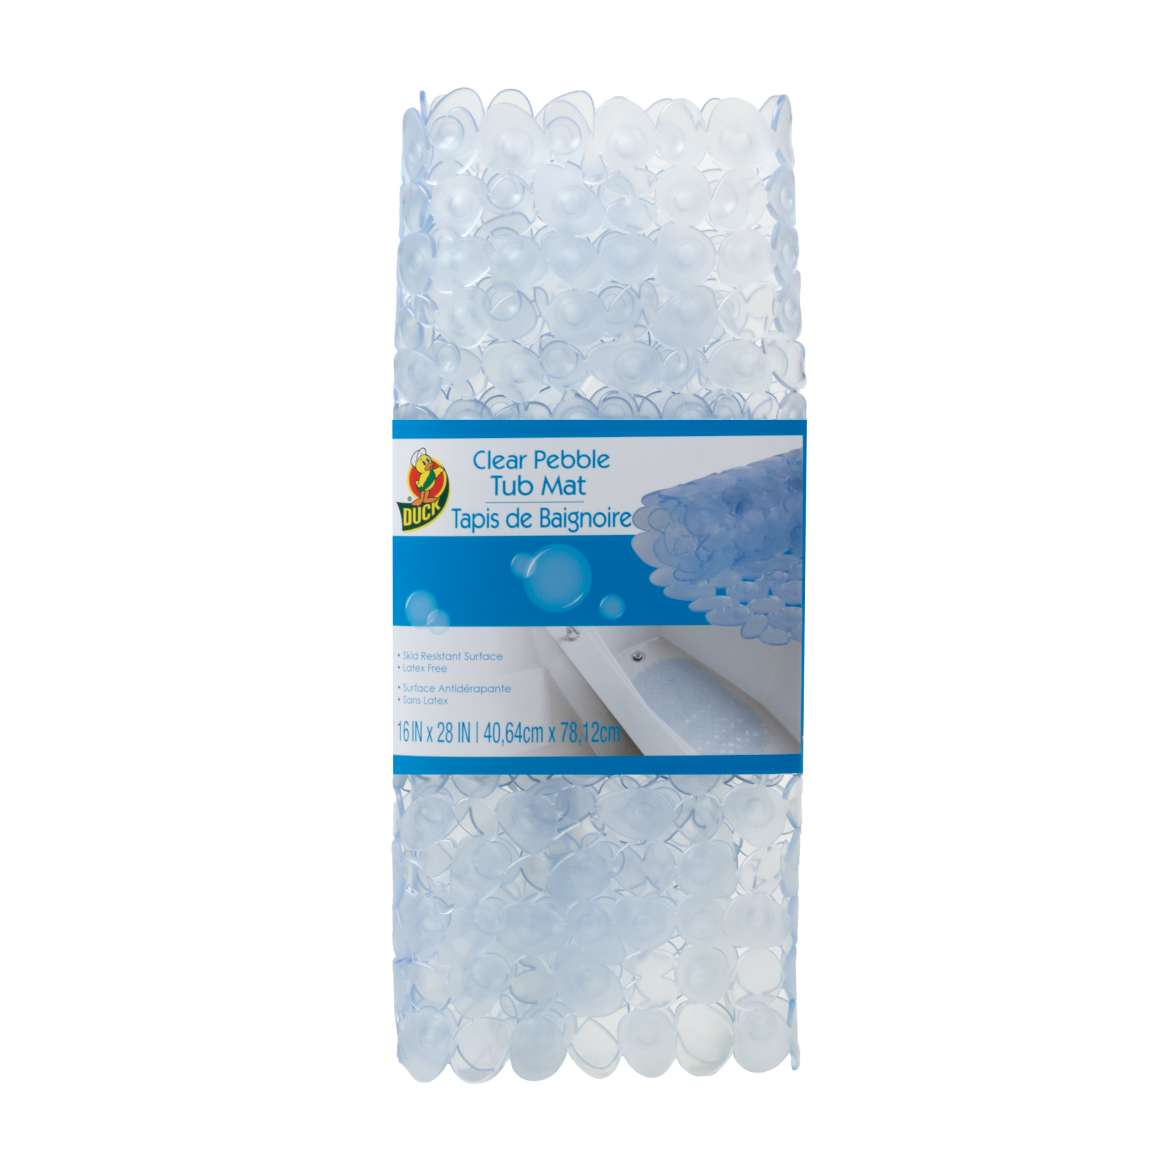 Duck® Brand Designer Tub Mat - Clear Pebble, 16 in. x 28 in. Image